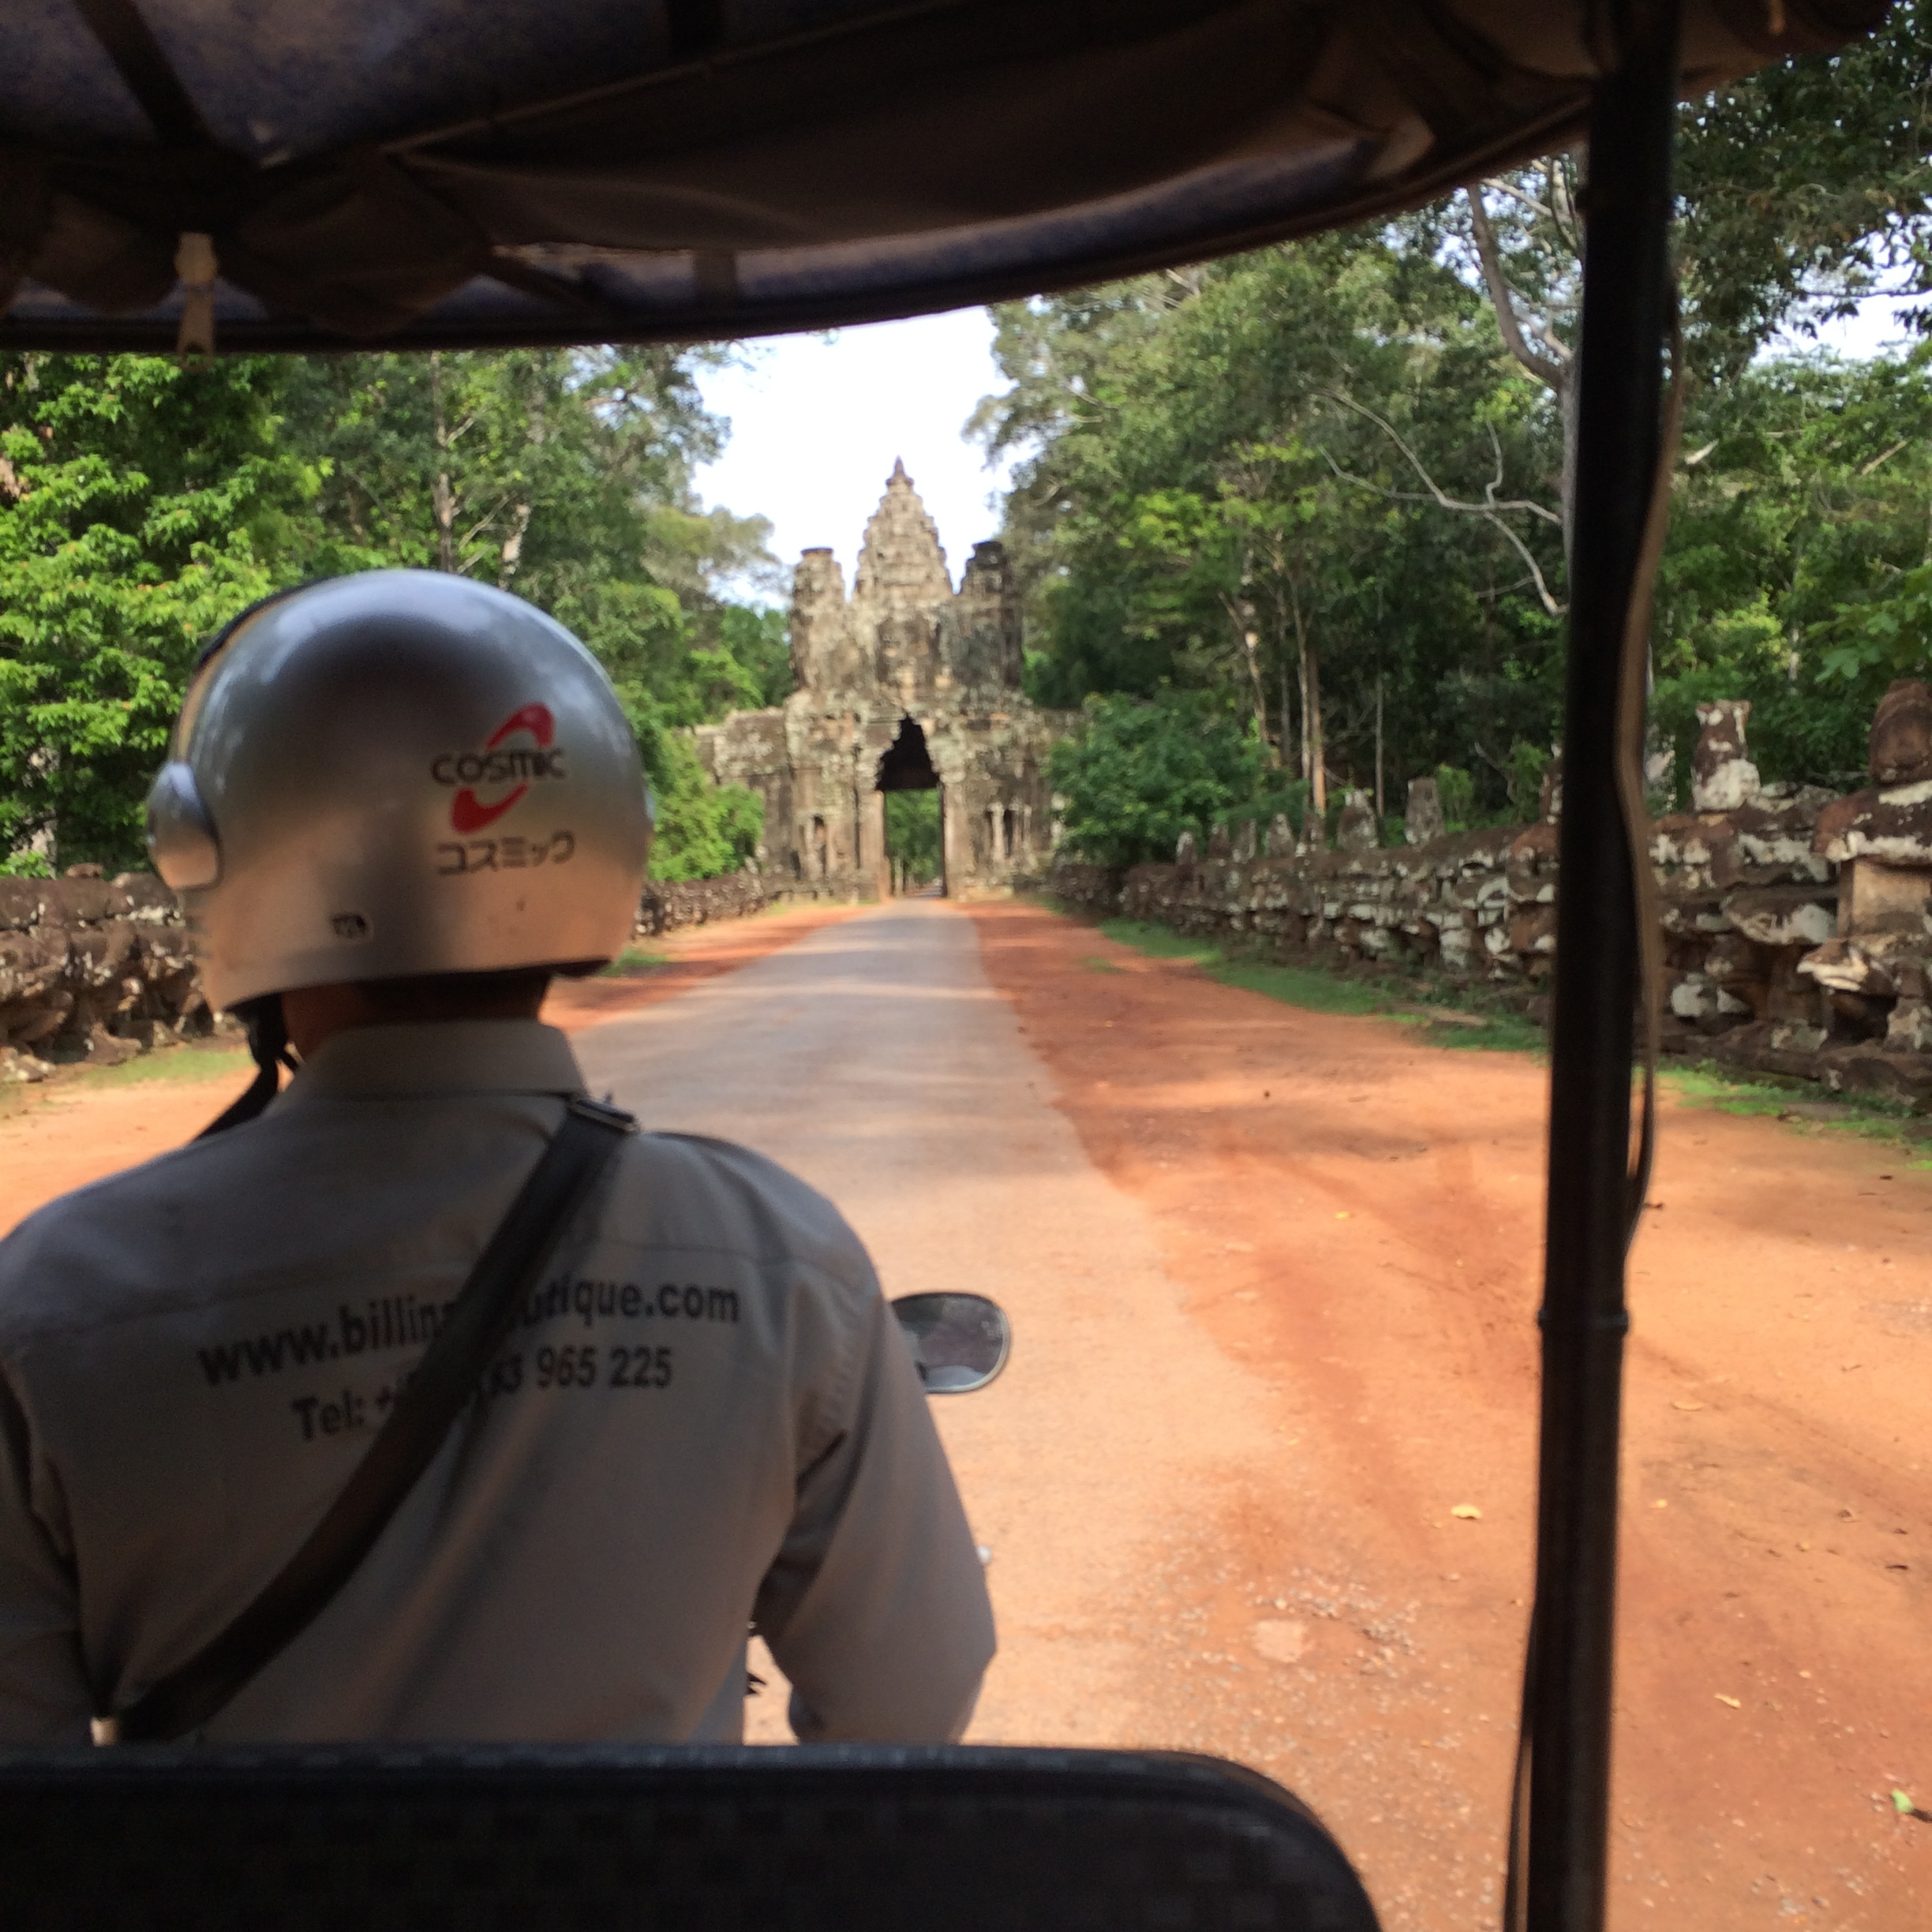 The view from the Tuk Tuk